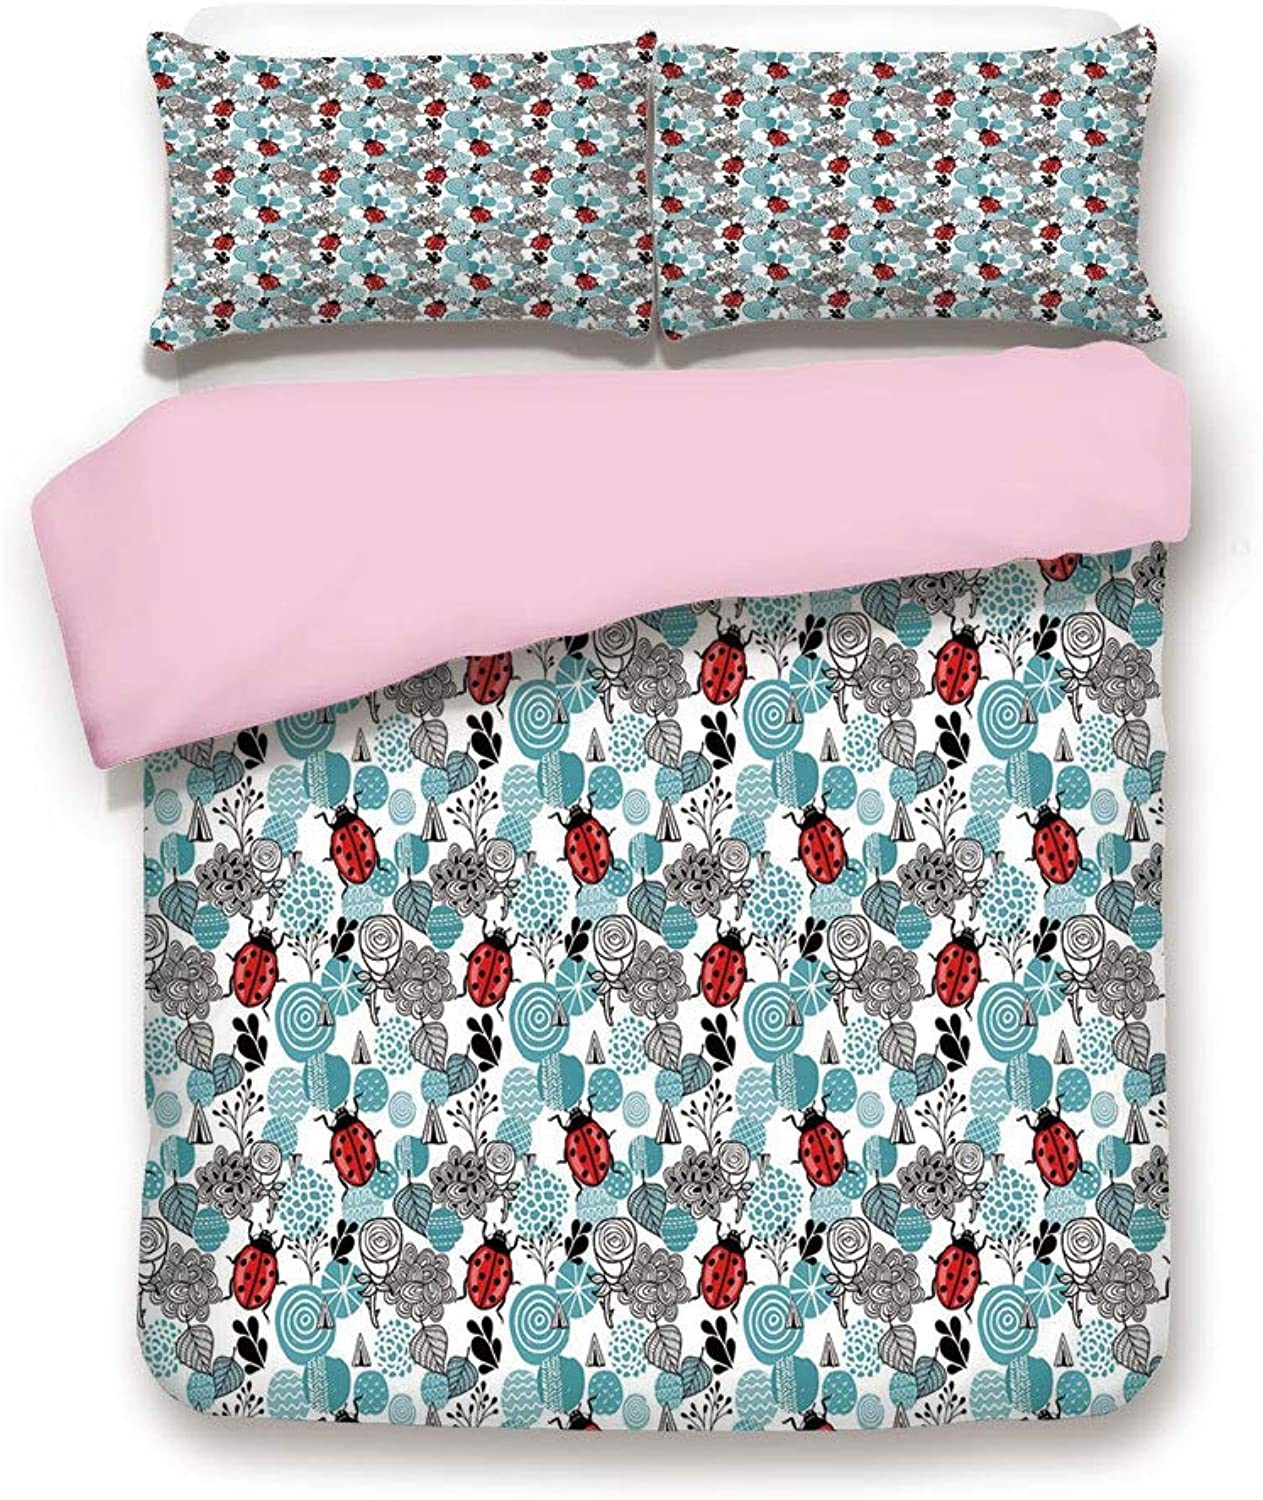 Pink Duvet Cover Set/Twin Size/Romantic Elements Flowers pinks Bugs Abstract Pattern in Doodle Style/Decorative 3 Piece Bedding Set with 2 Pillow Sham/Best Gift for Girls Women/Pale bluee Red Black